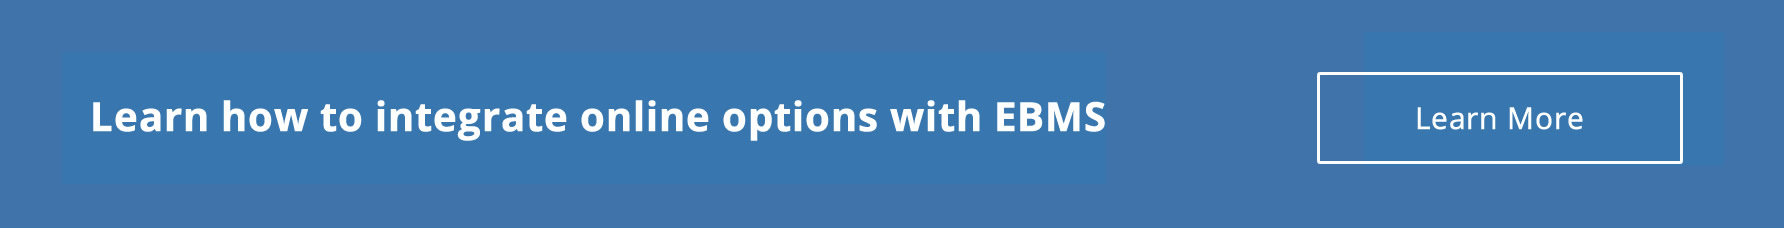 Integrate online options with EBMS